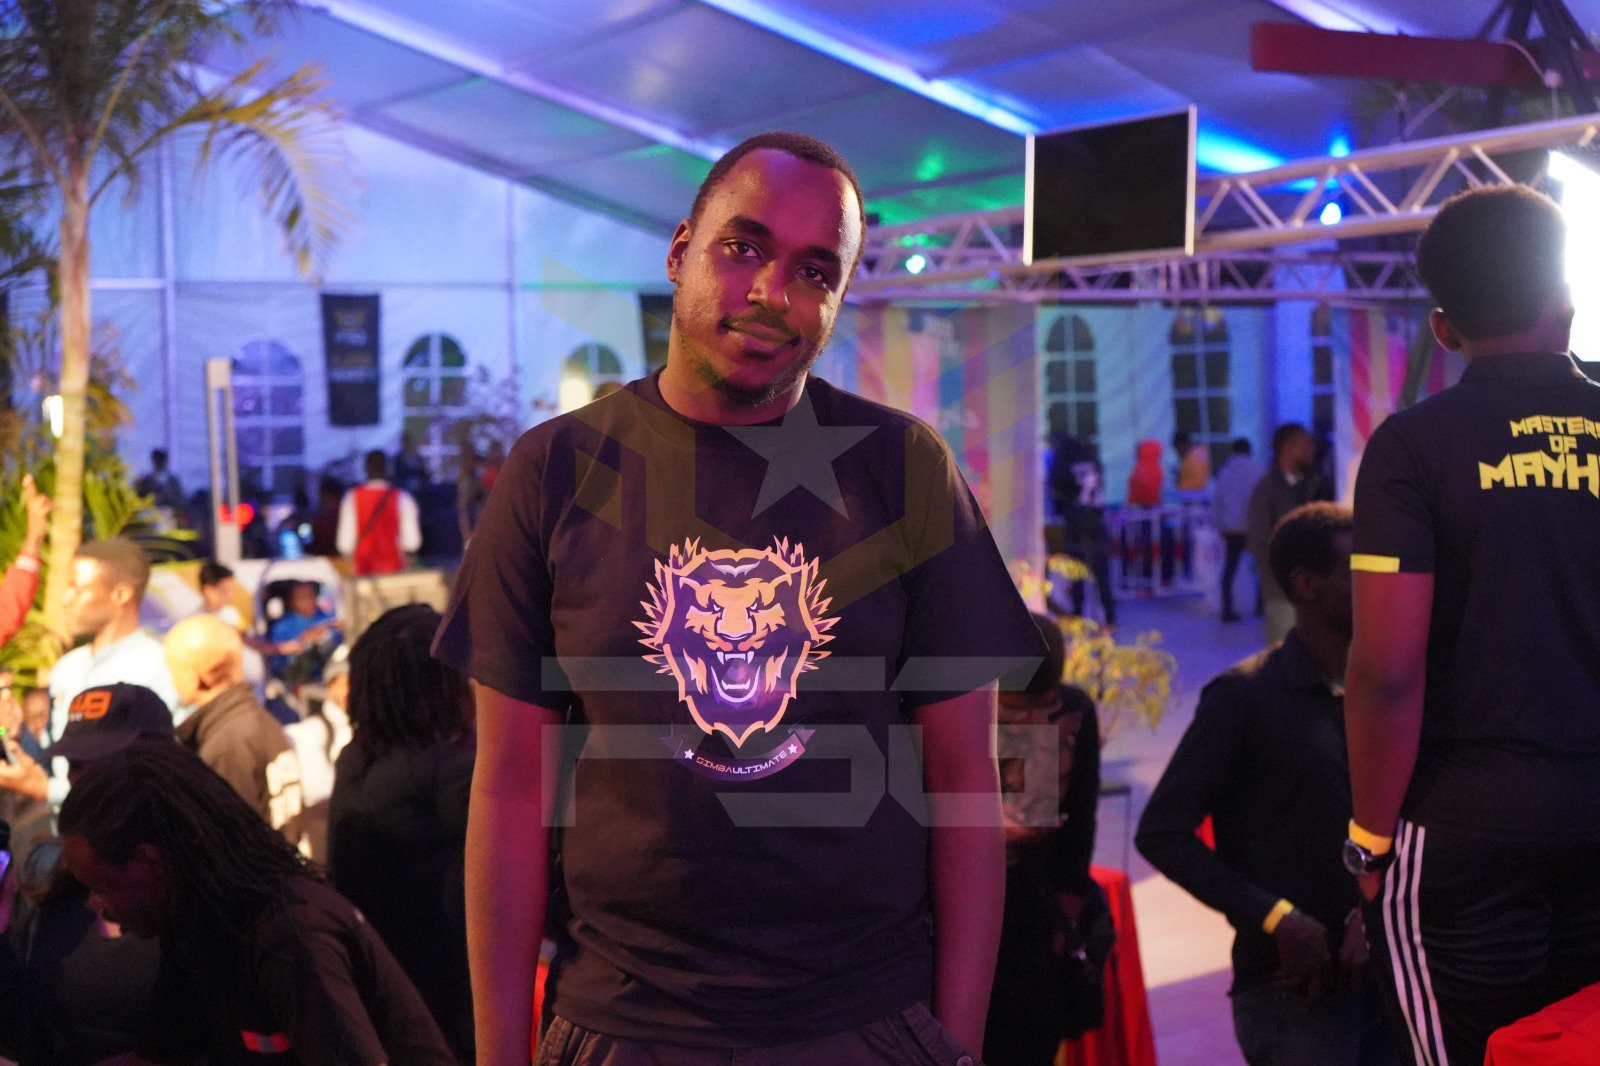 Simba Ultimate Tekken 7 Pro Player DarkTempest 3rd Place at South Africa's CapeTown Showdown 7